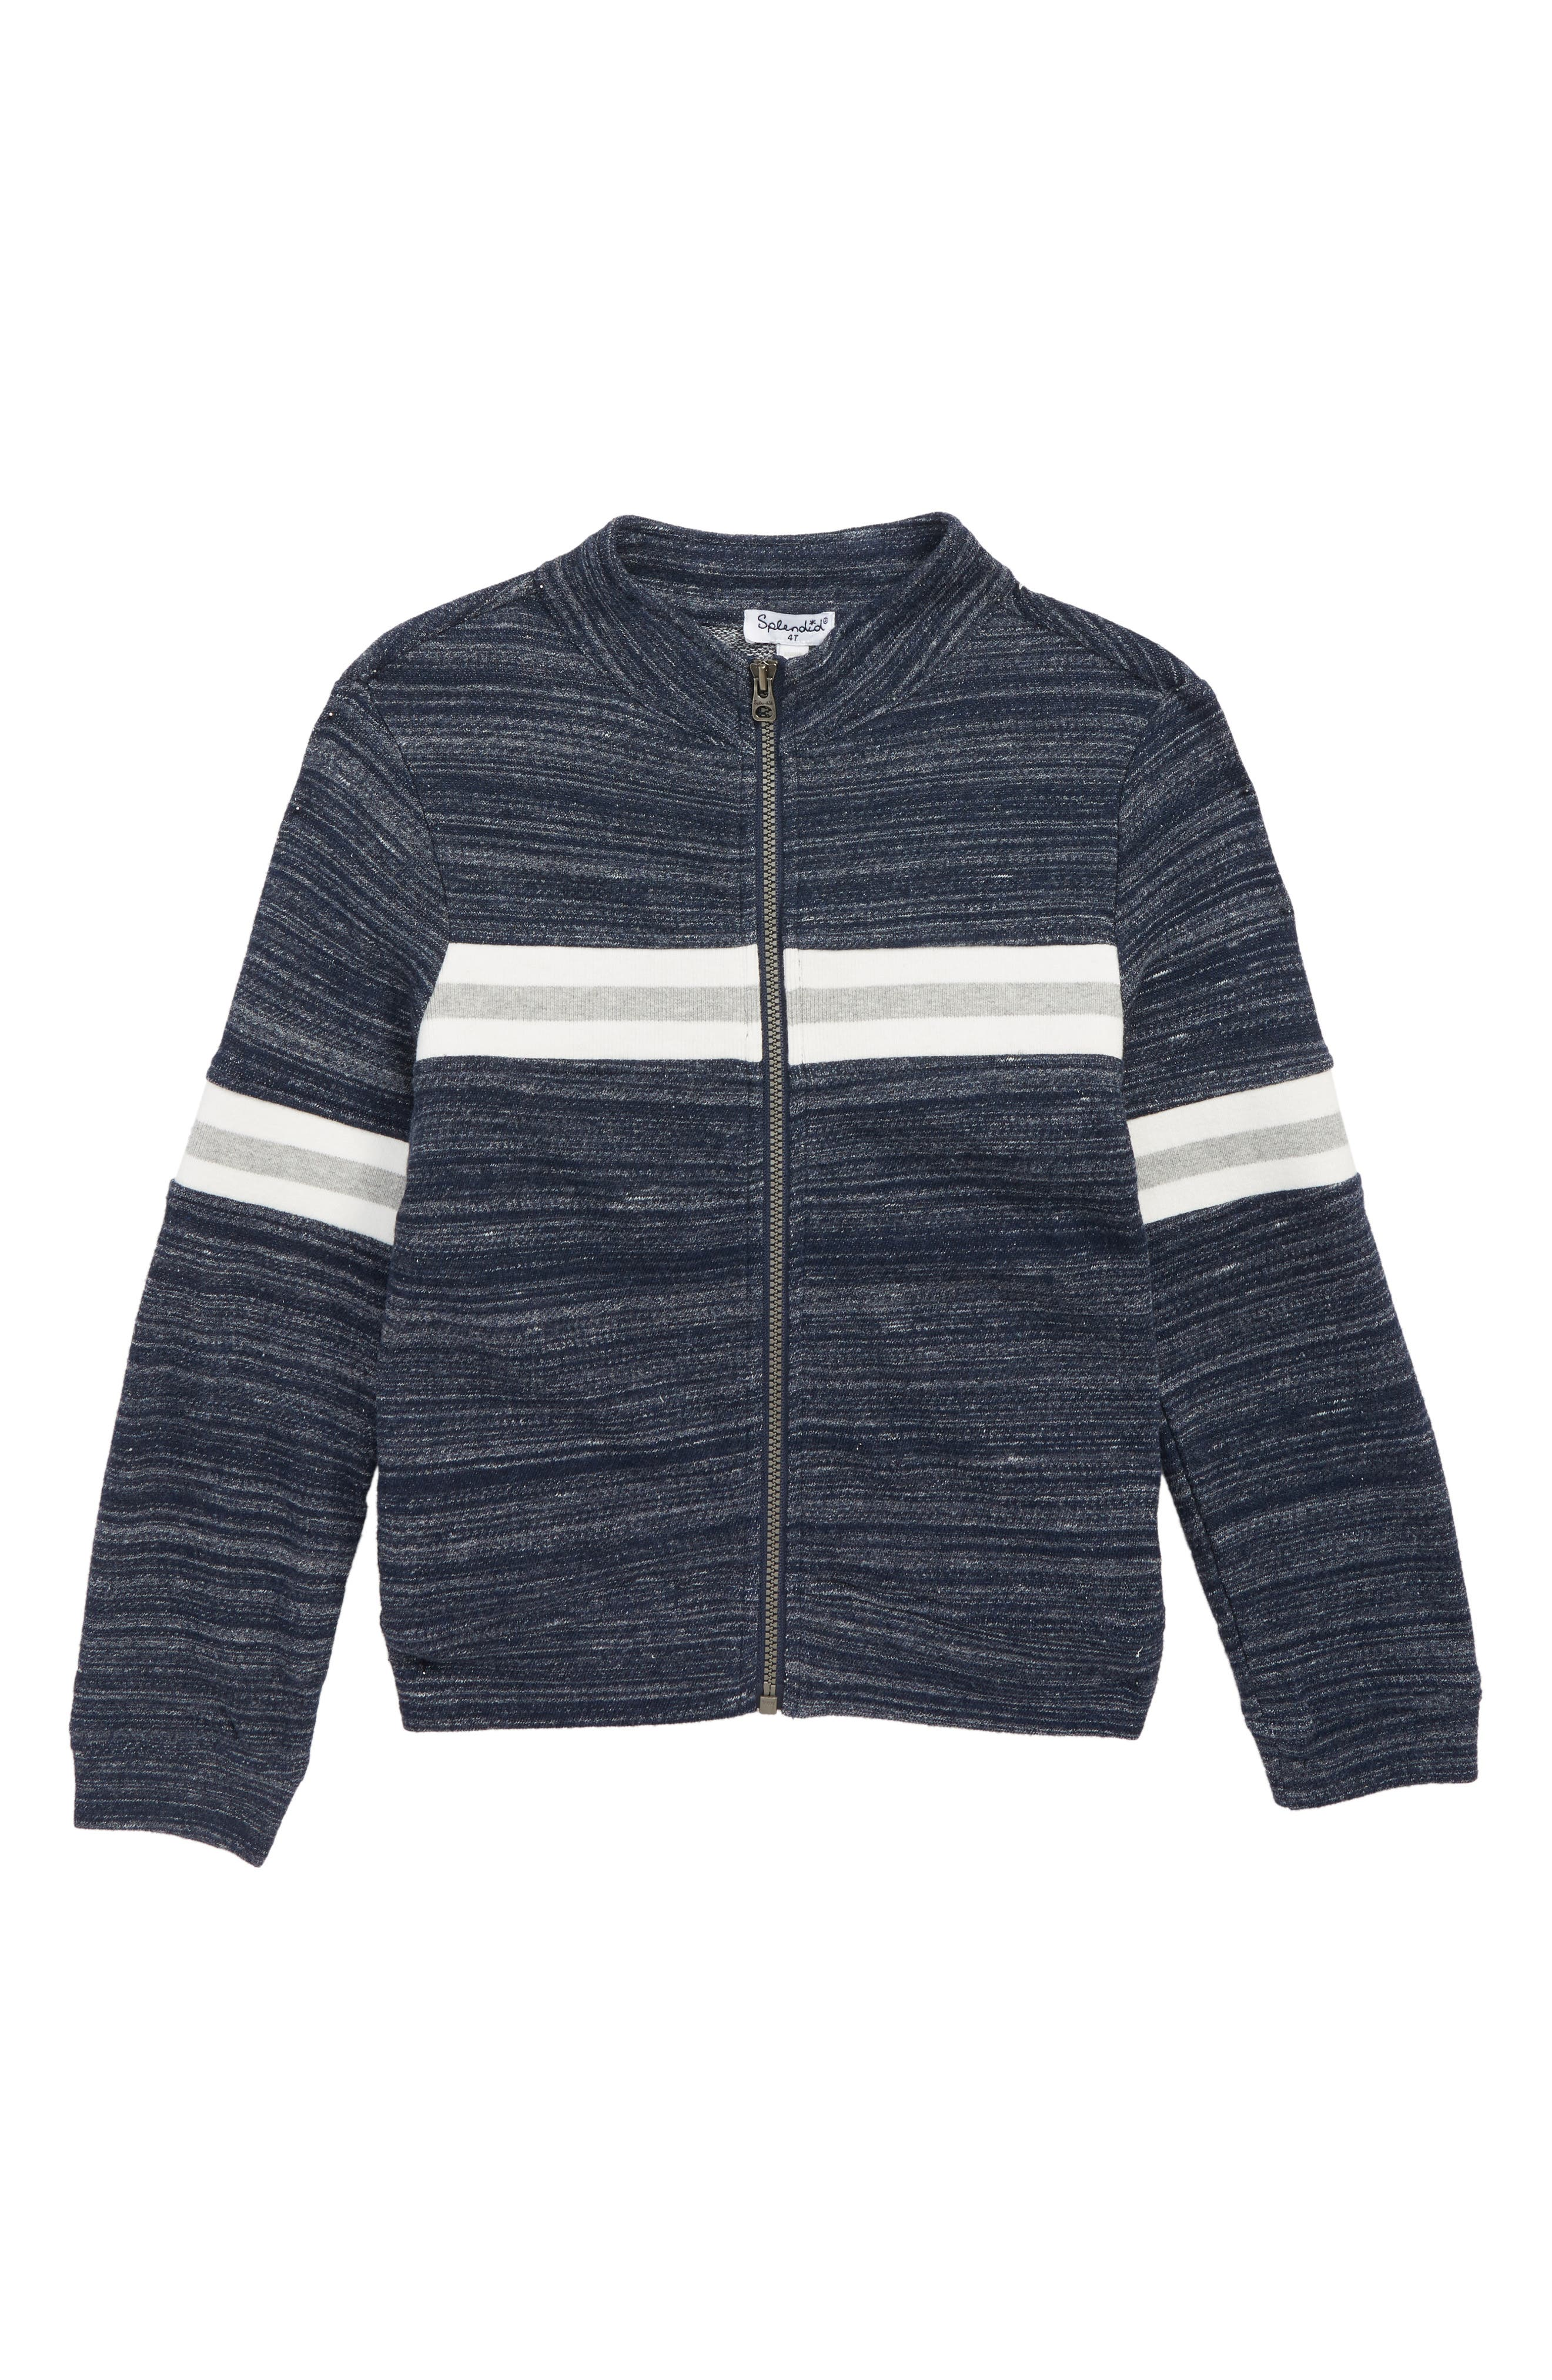 French Terry Jacket,                             Main thumbnail 1, color,                             TRUE NAVY